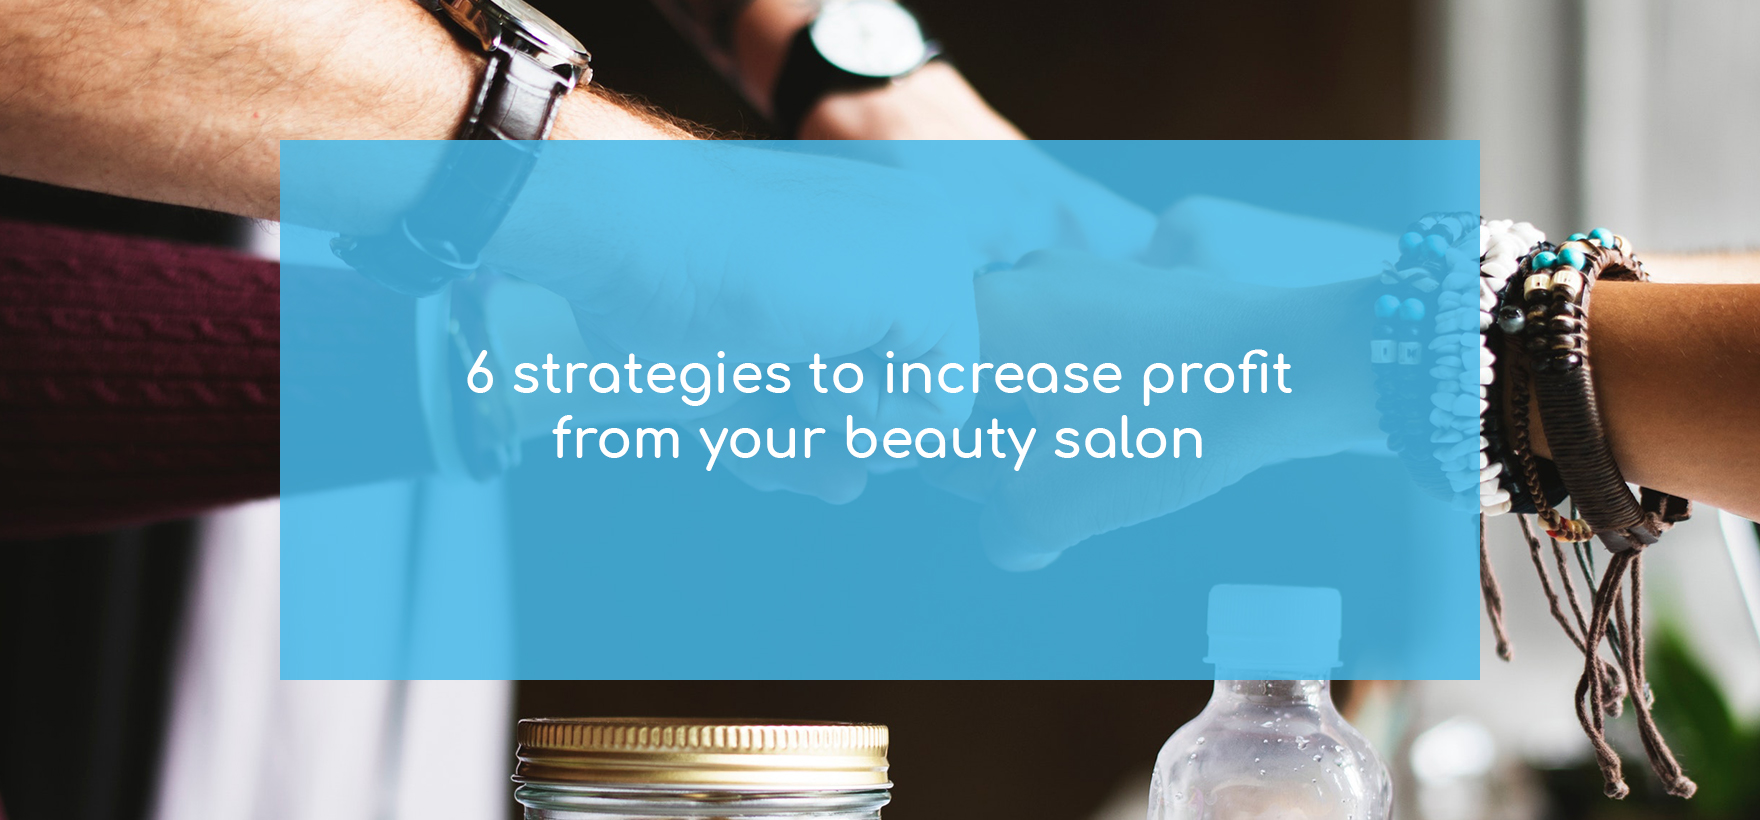 6 Ways to Increase Profit Margin from Your Beauty Salon